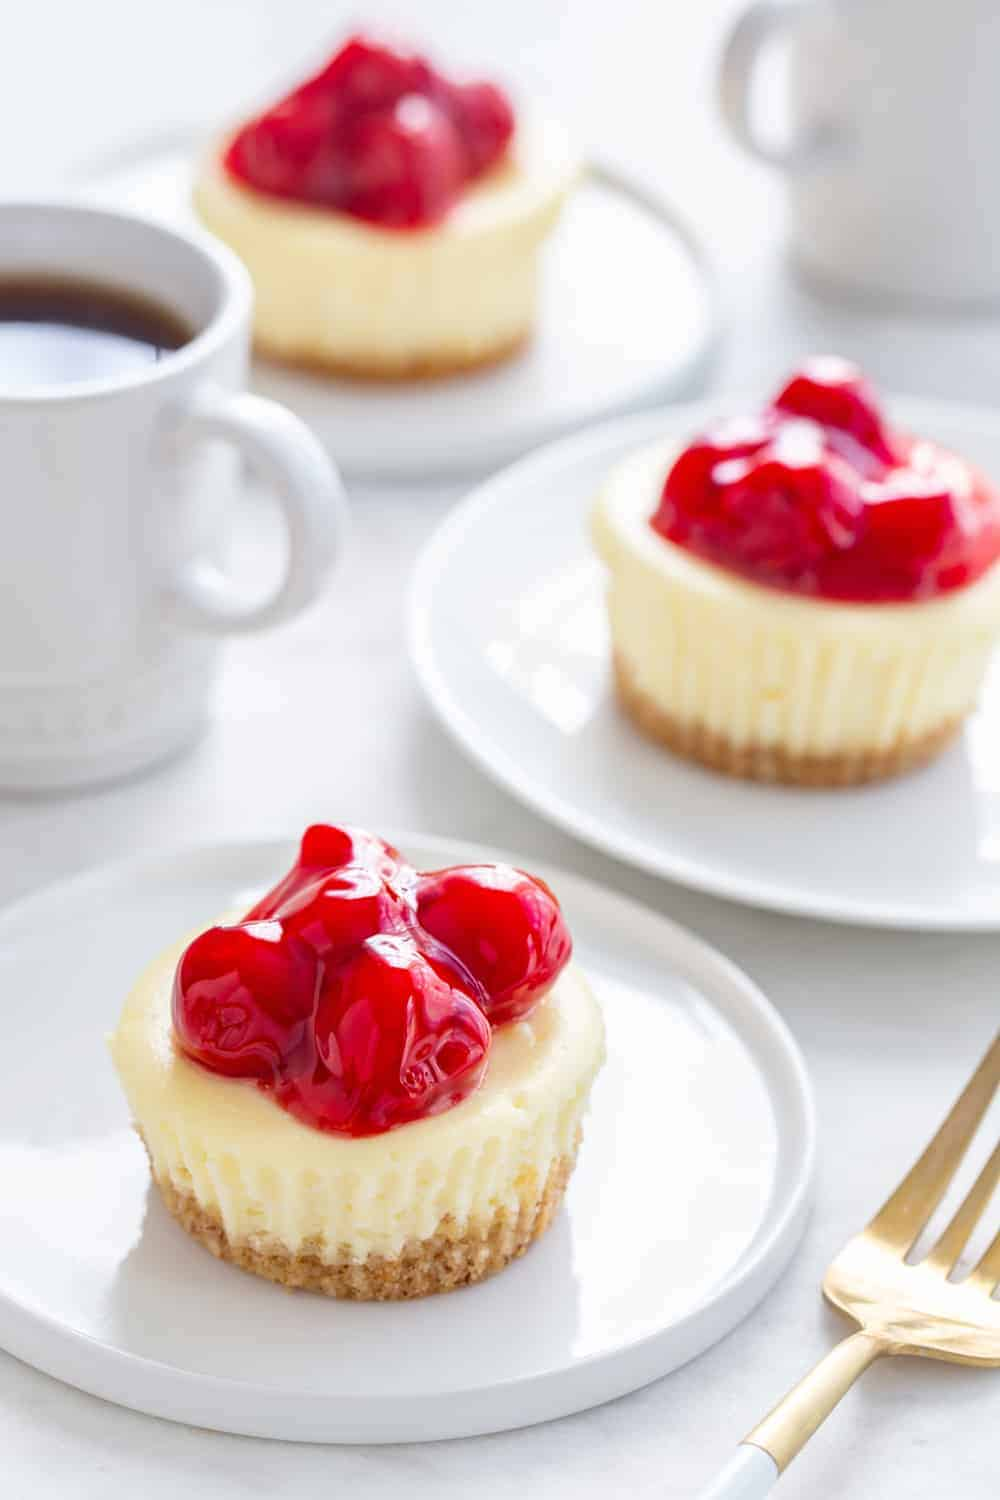 Mini Cherry Almond Cheesecakes are the perfect dessert for summer entertaining. Simple and so delish!